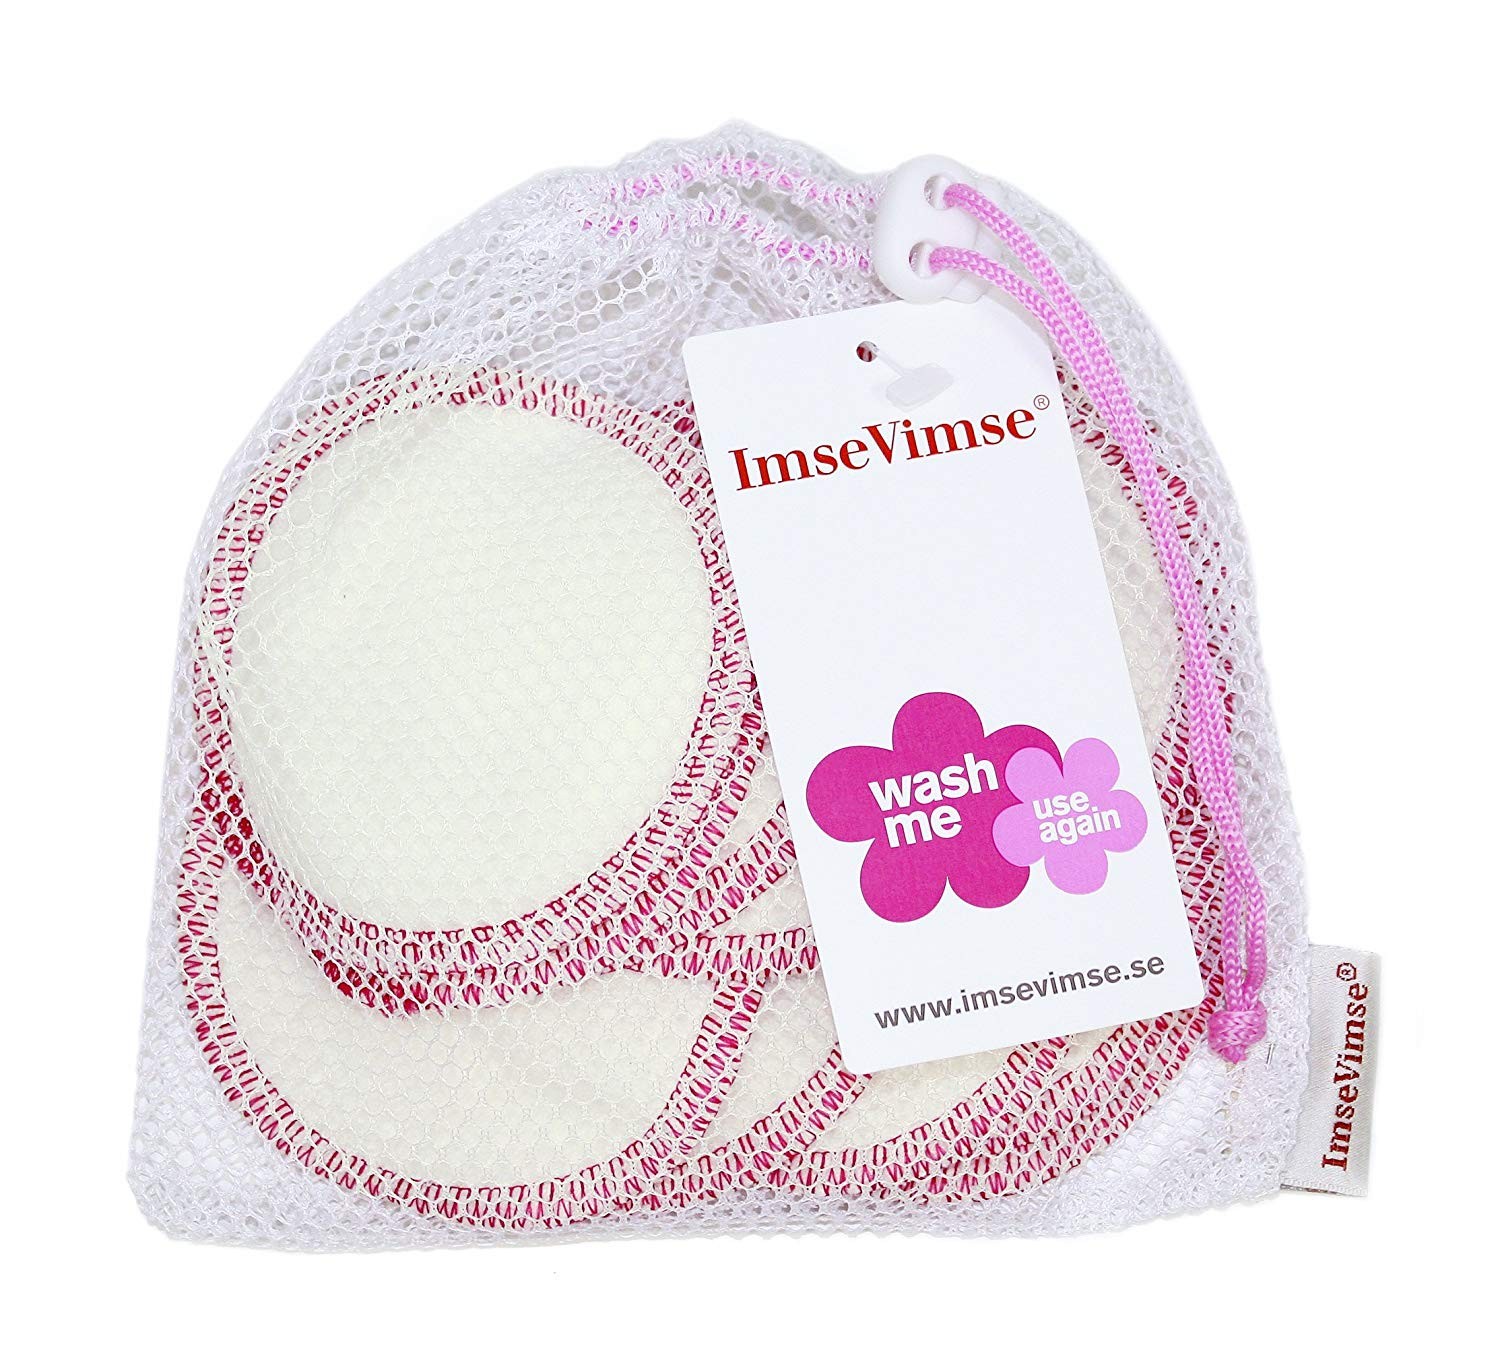 ImseVimse Washable Make-up Remover Pads - Pack of 10